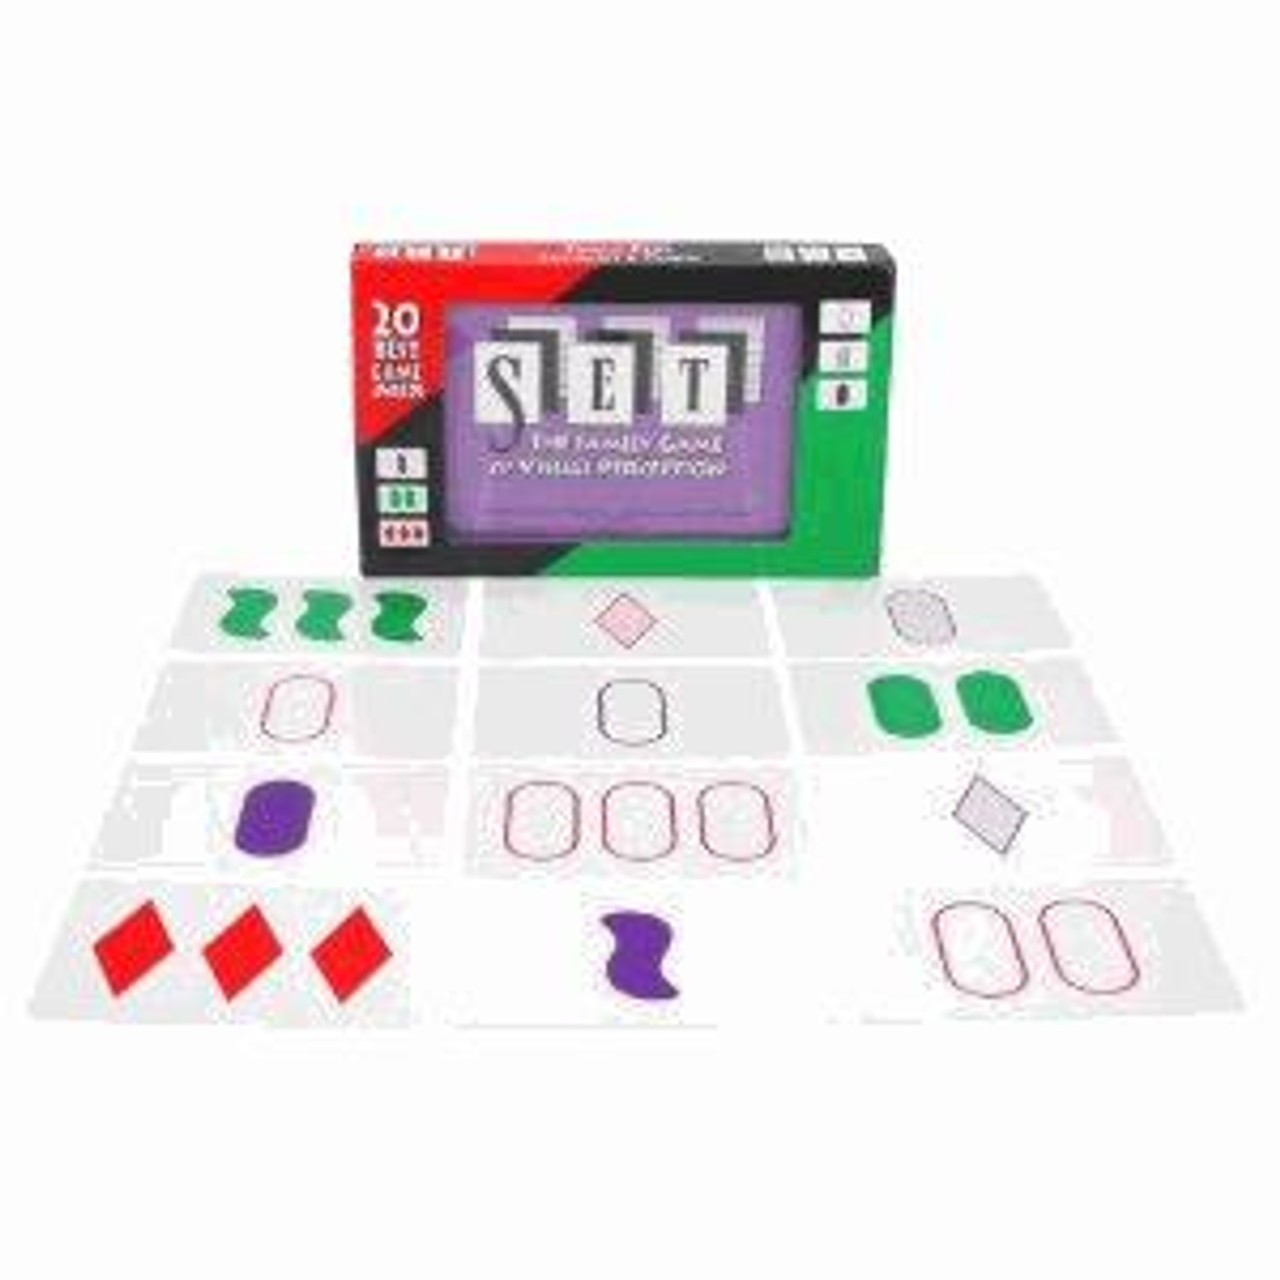 Set The Game of Visual Perception Card Game